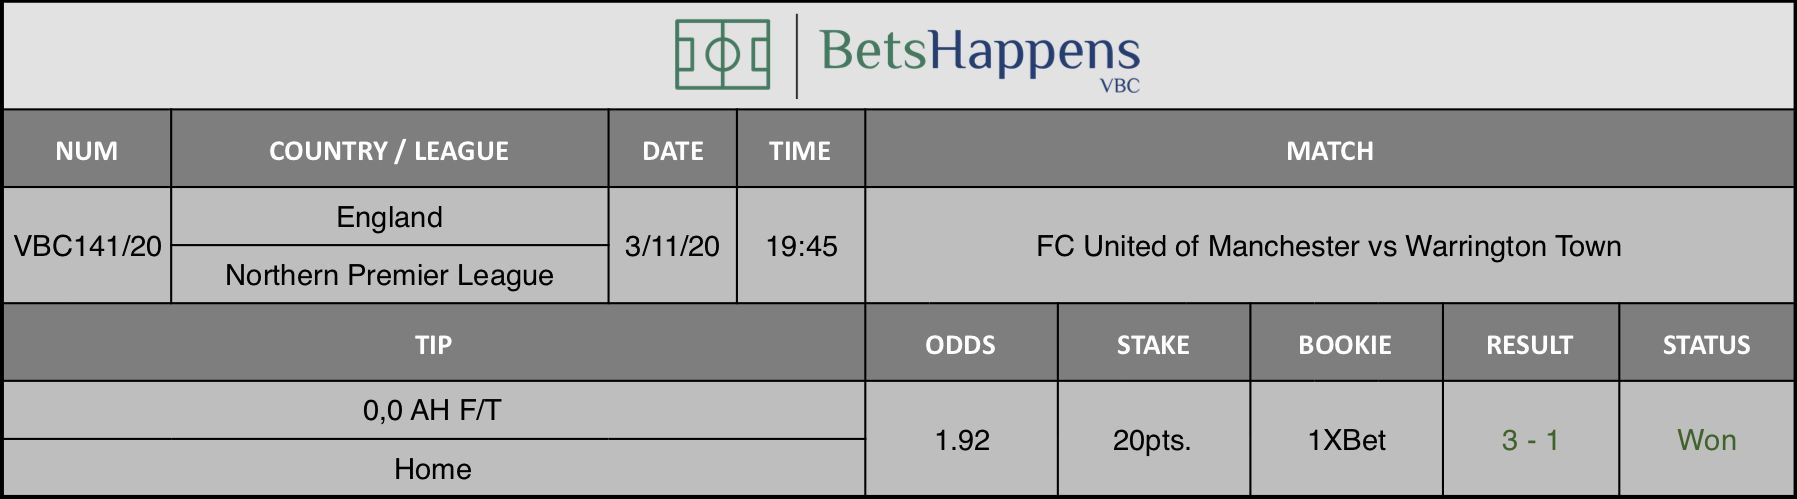 Results of our tip for the FC United of Manchester vs Warrington Town  match where 0,0 AH F/T  Home is recommended.